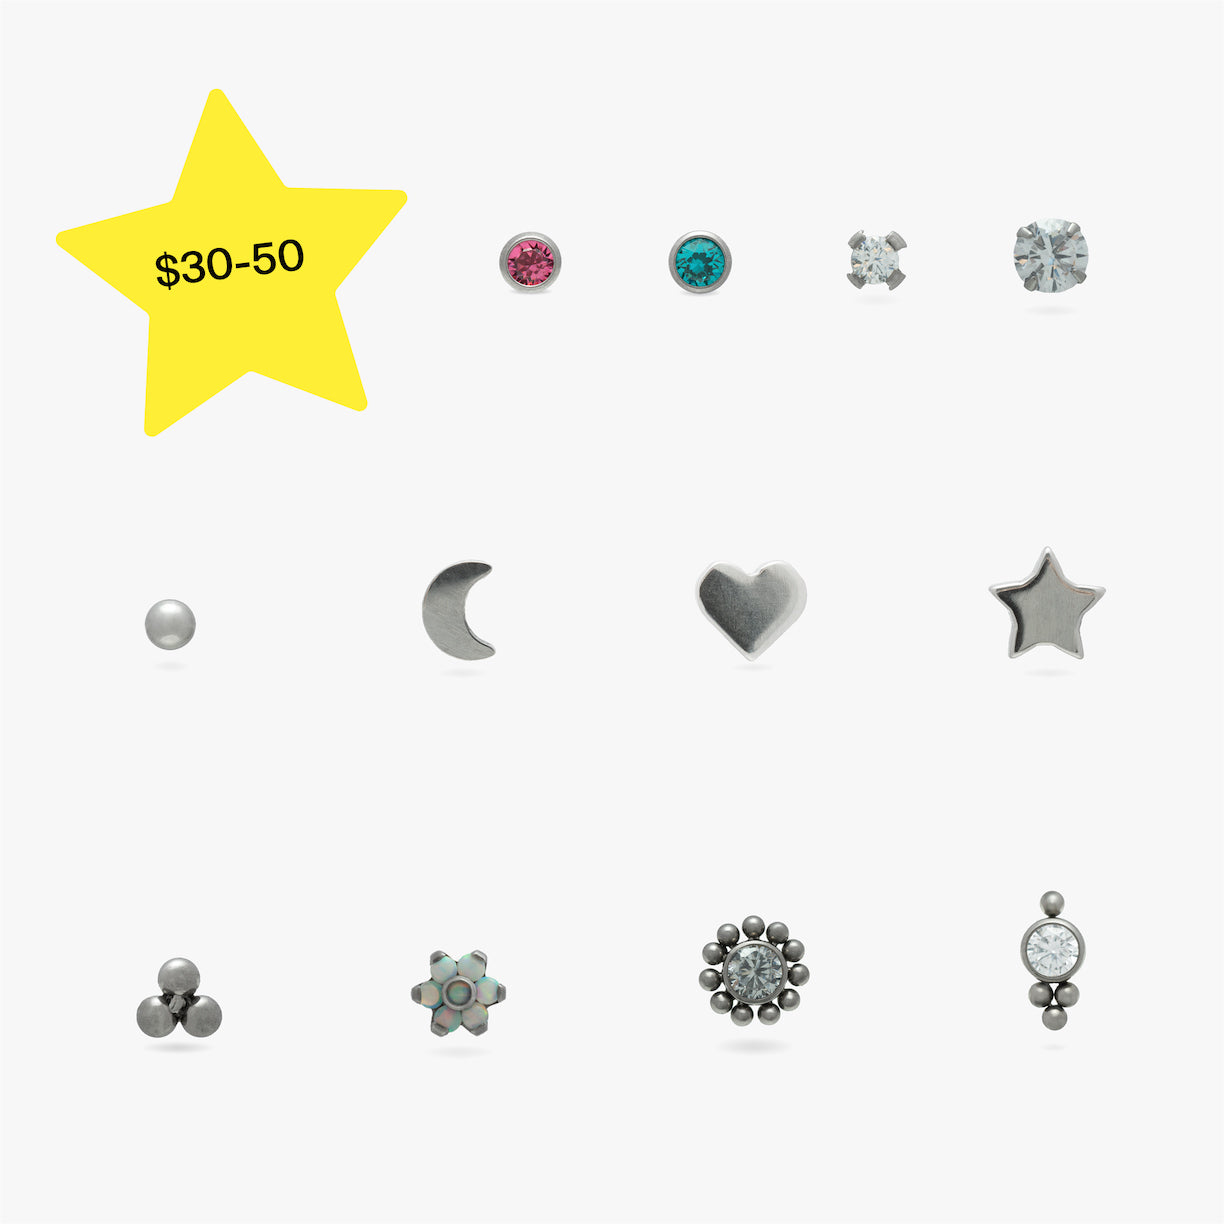 Image of 12 earrings in a grid that range in price from $30 to $50.